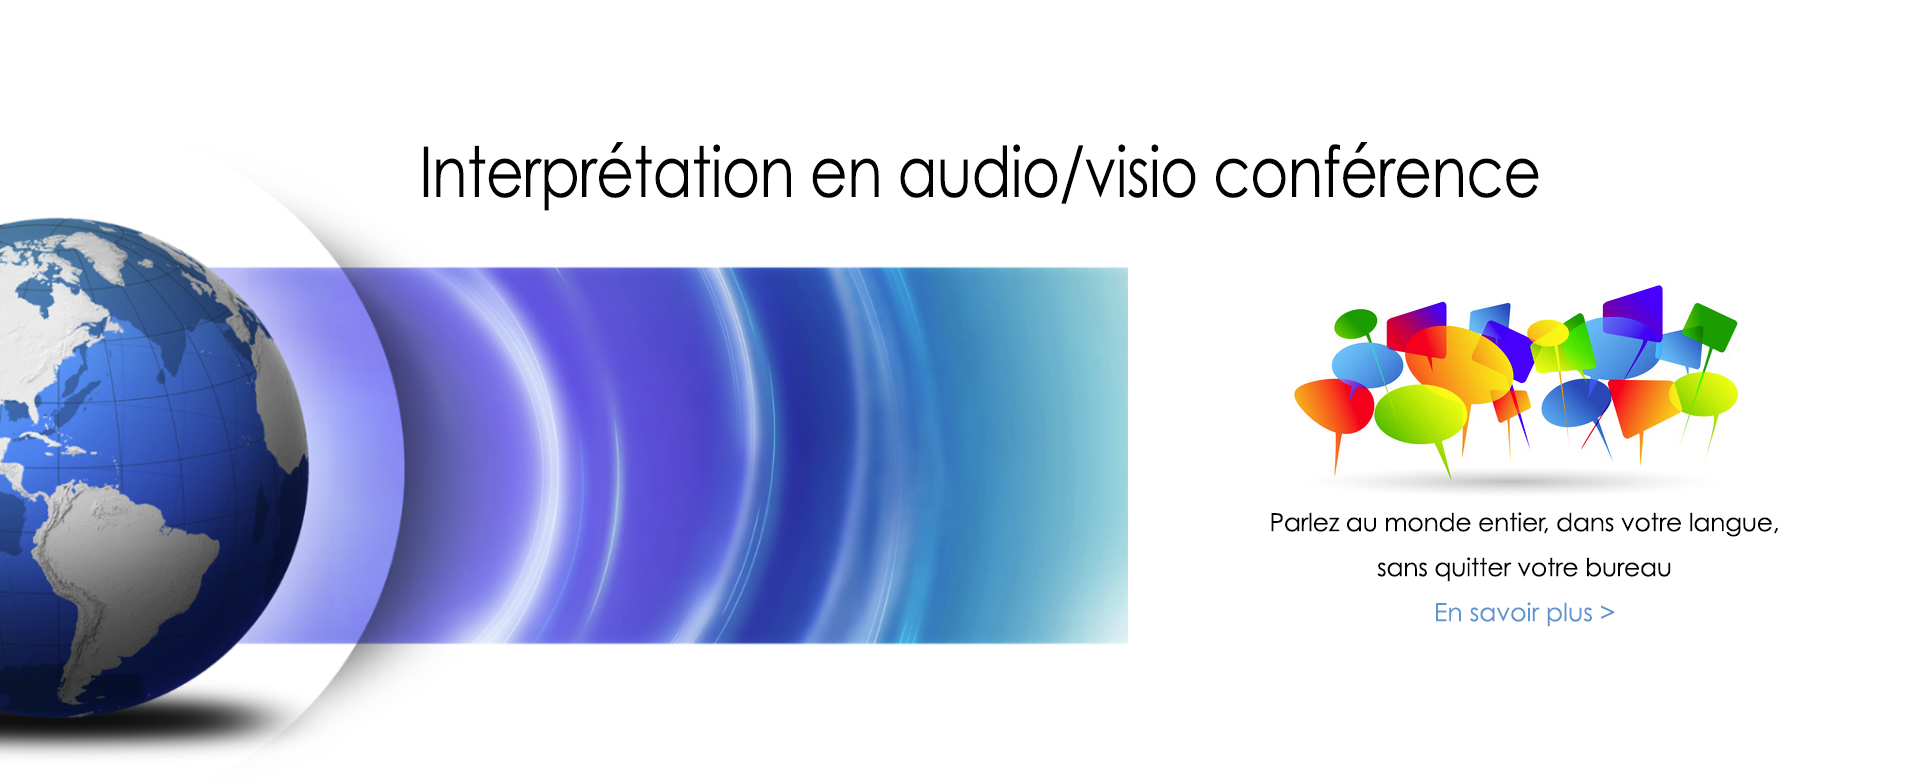 interprétation audio visio